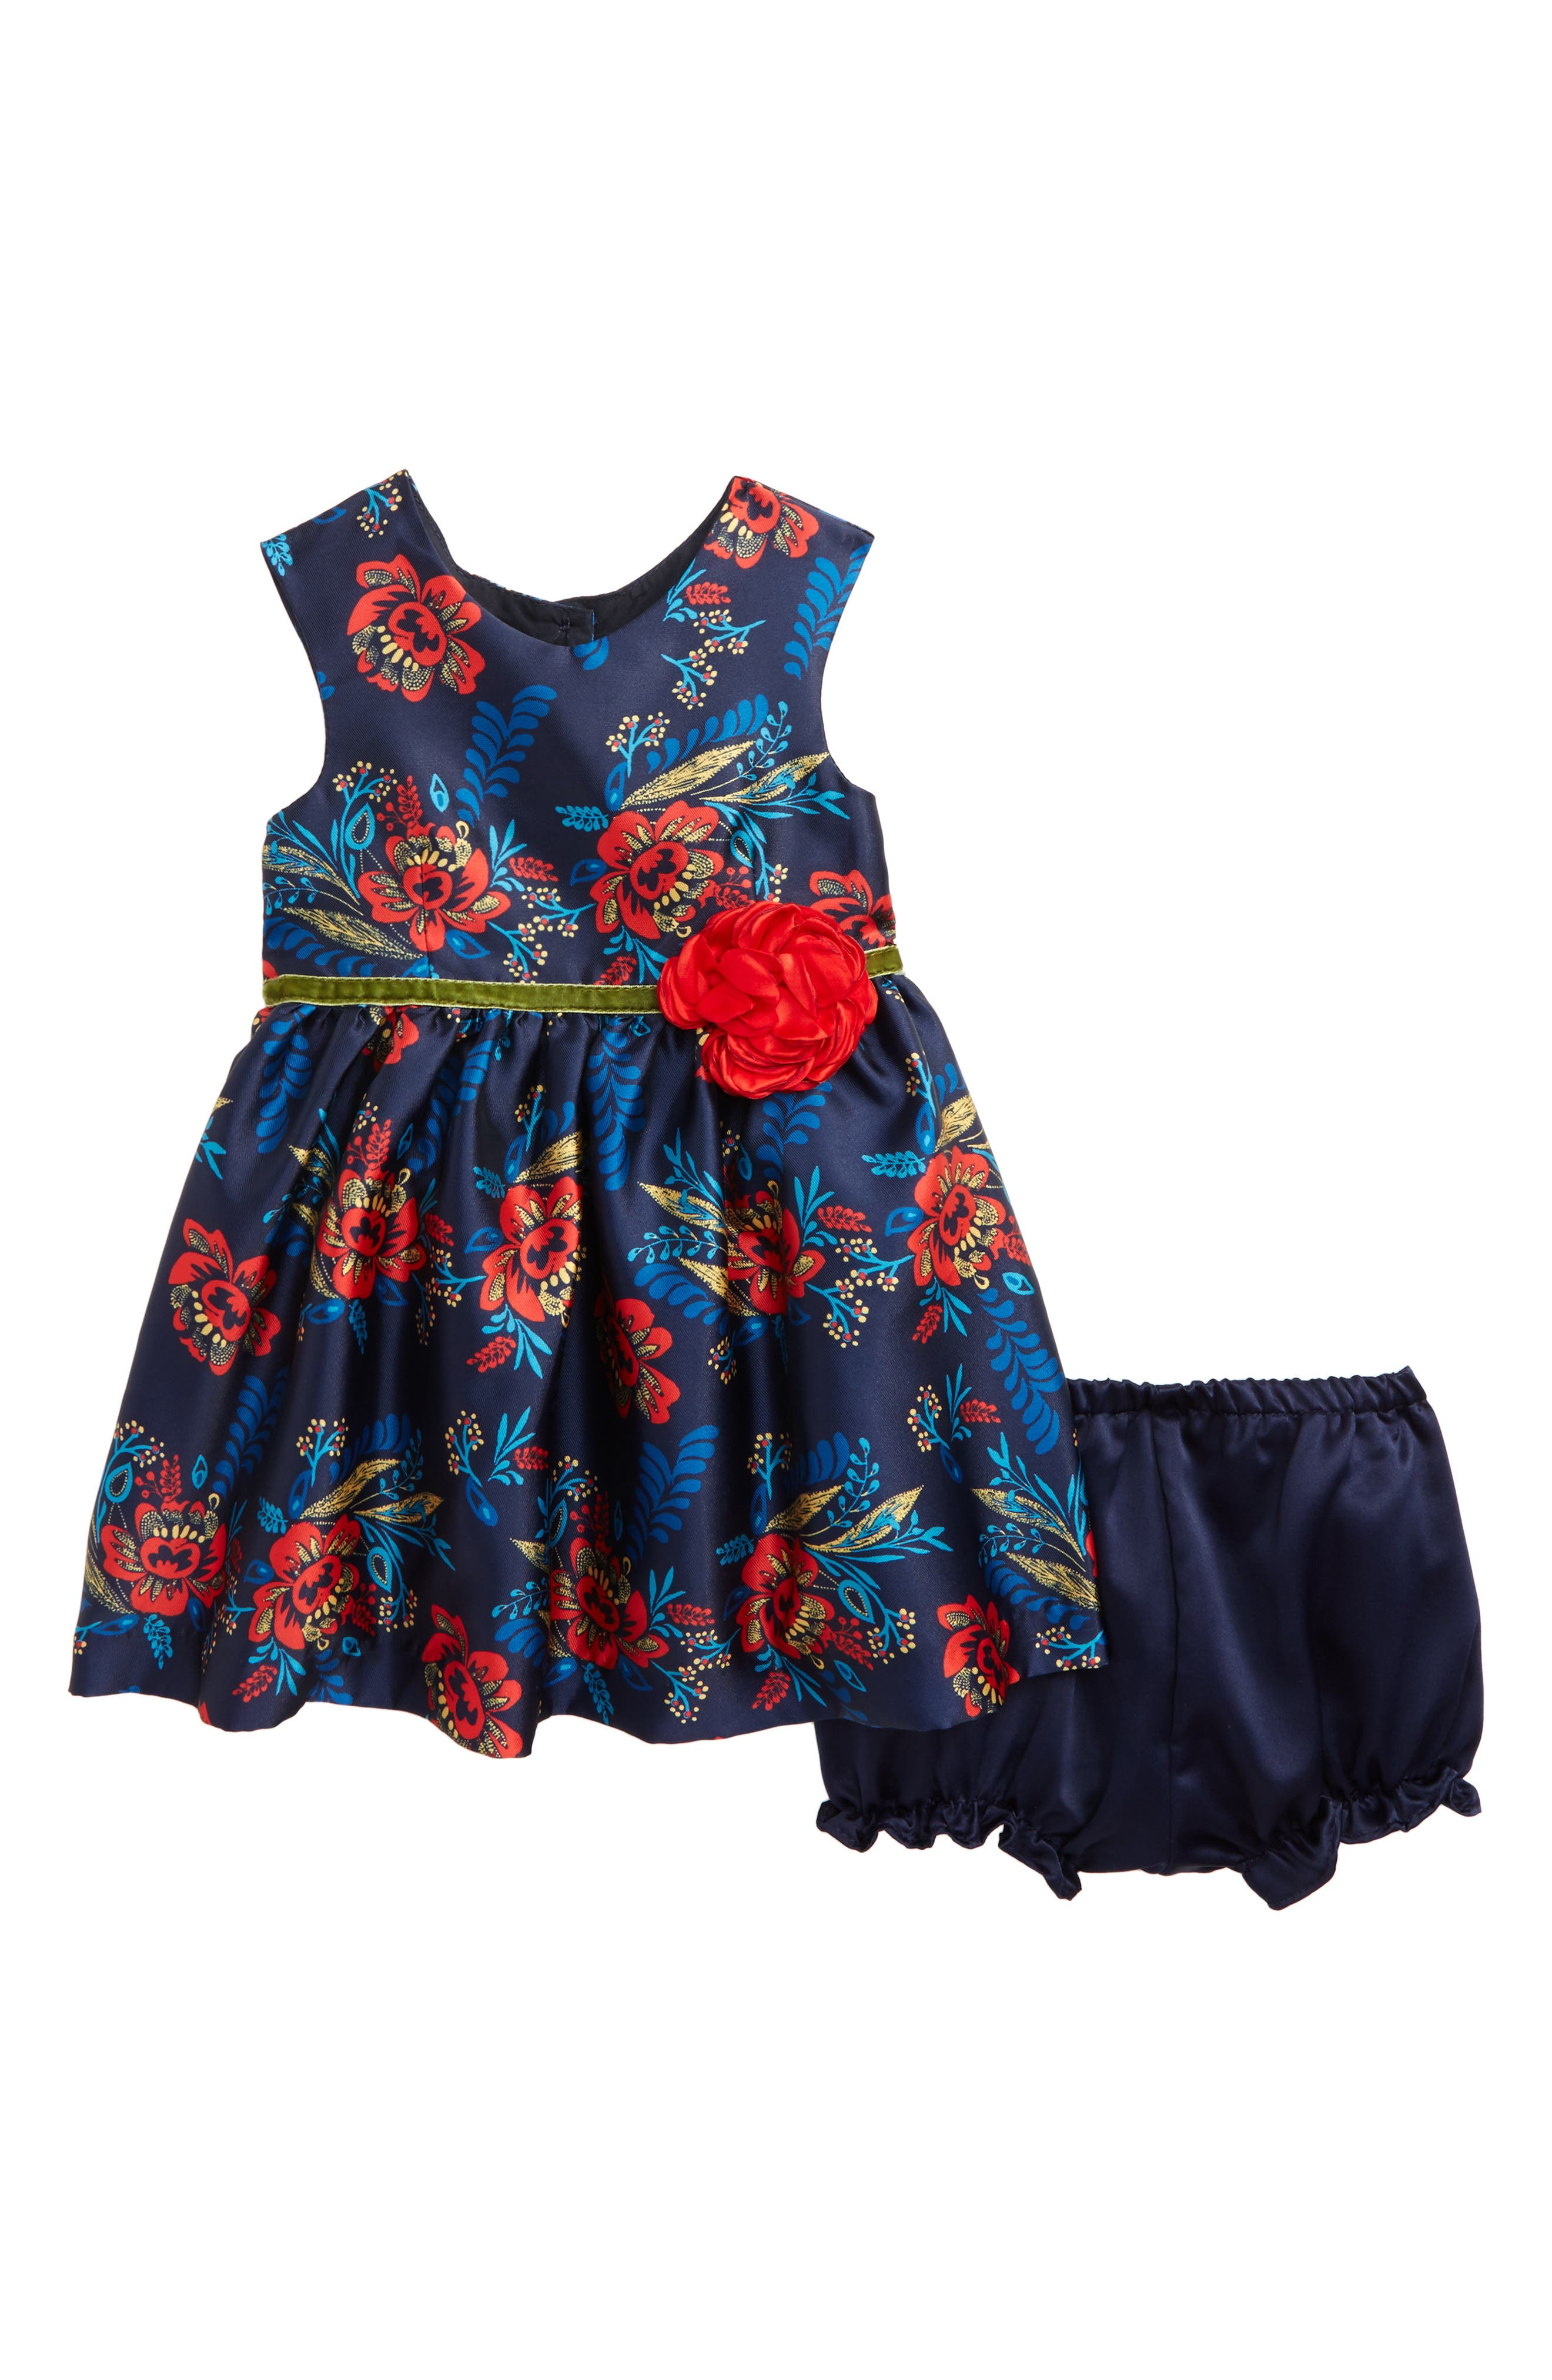 Main Image - Pippa & Julie Floral Print Fit & Flare Dress (Baby Girls)